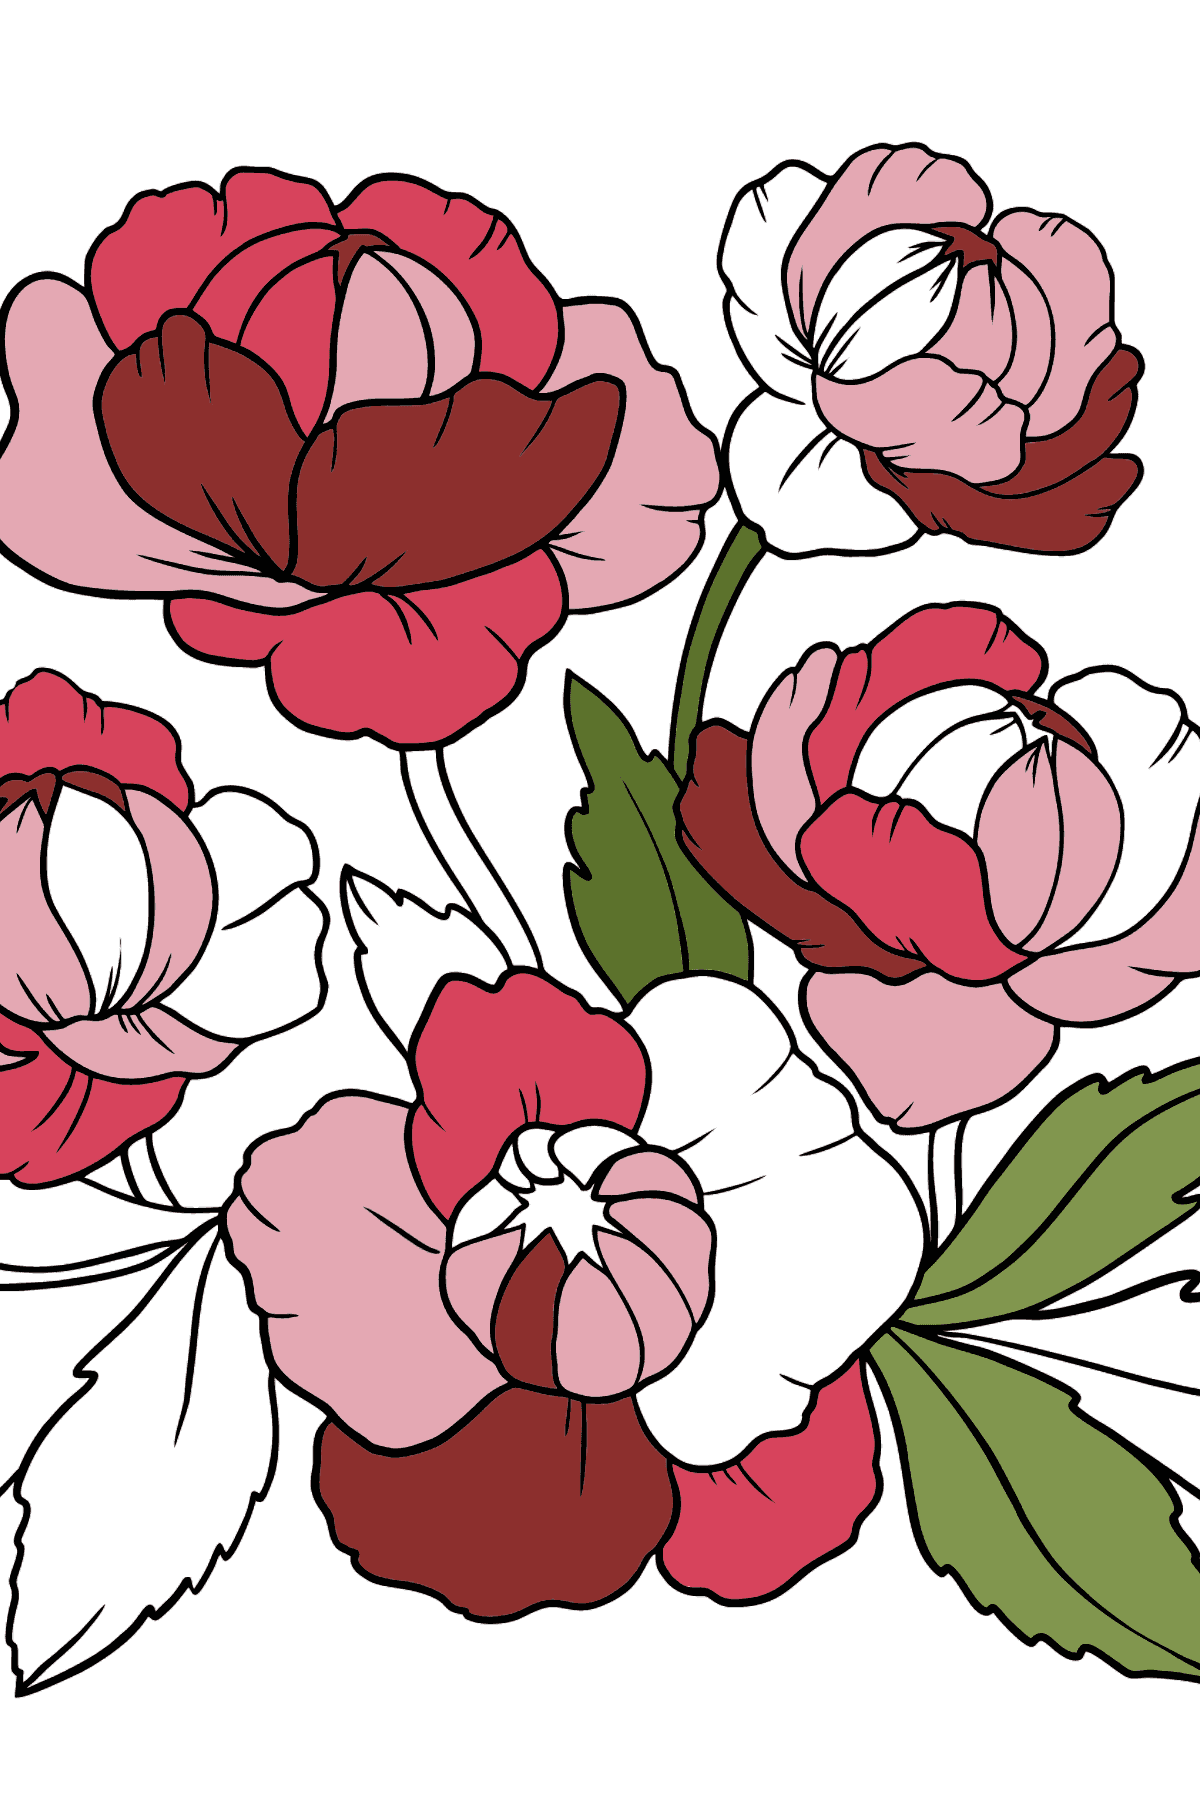 Flower Coloring Page - A Pink Globeflower - Coloring Pages for Kids